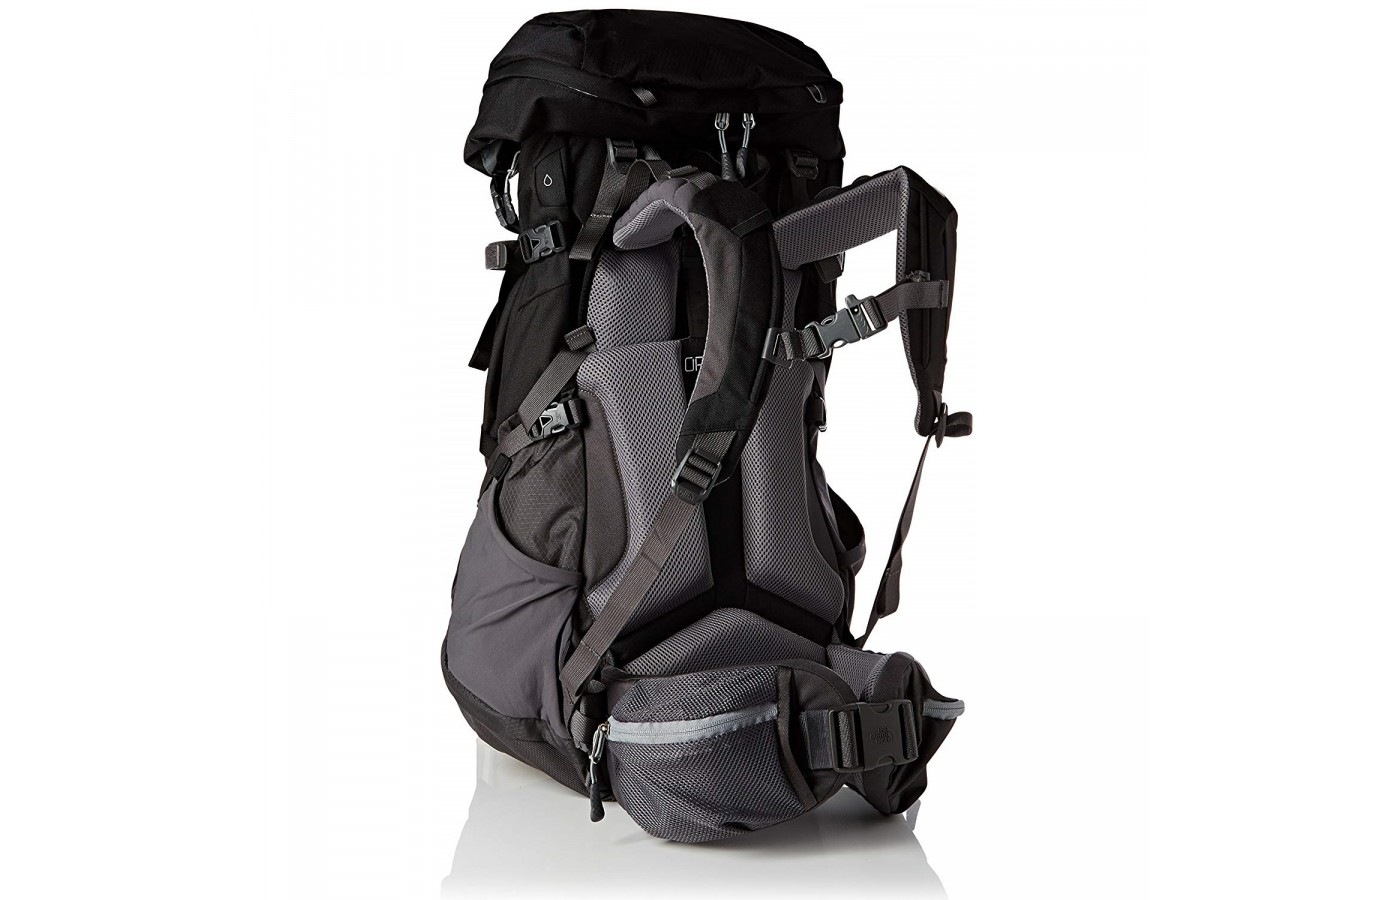 The North Face Terra 65 offers a vertical channel in order to help with ventilation and breathability.